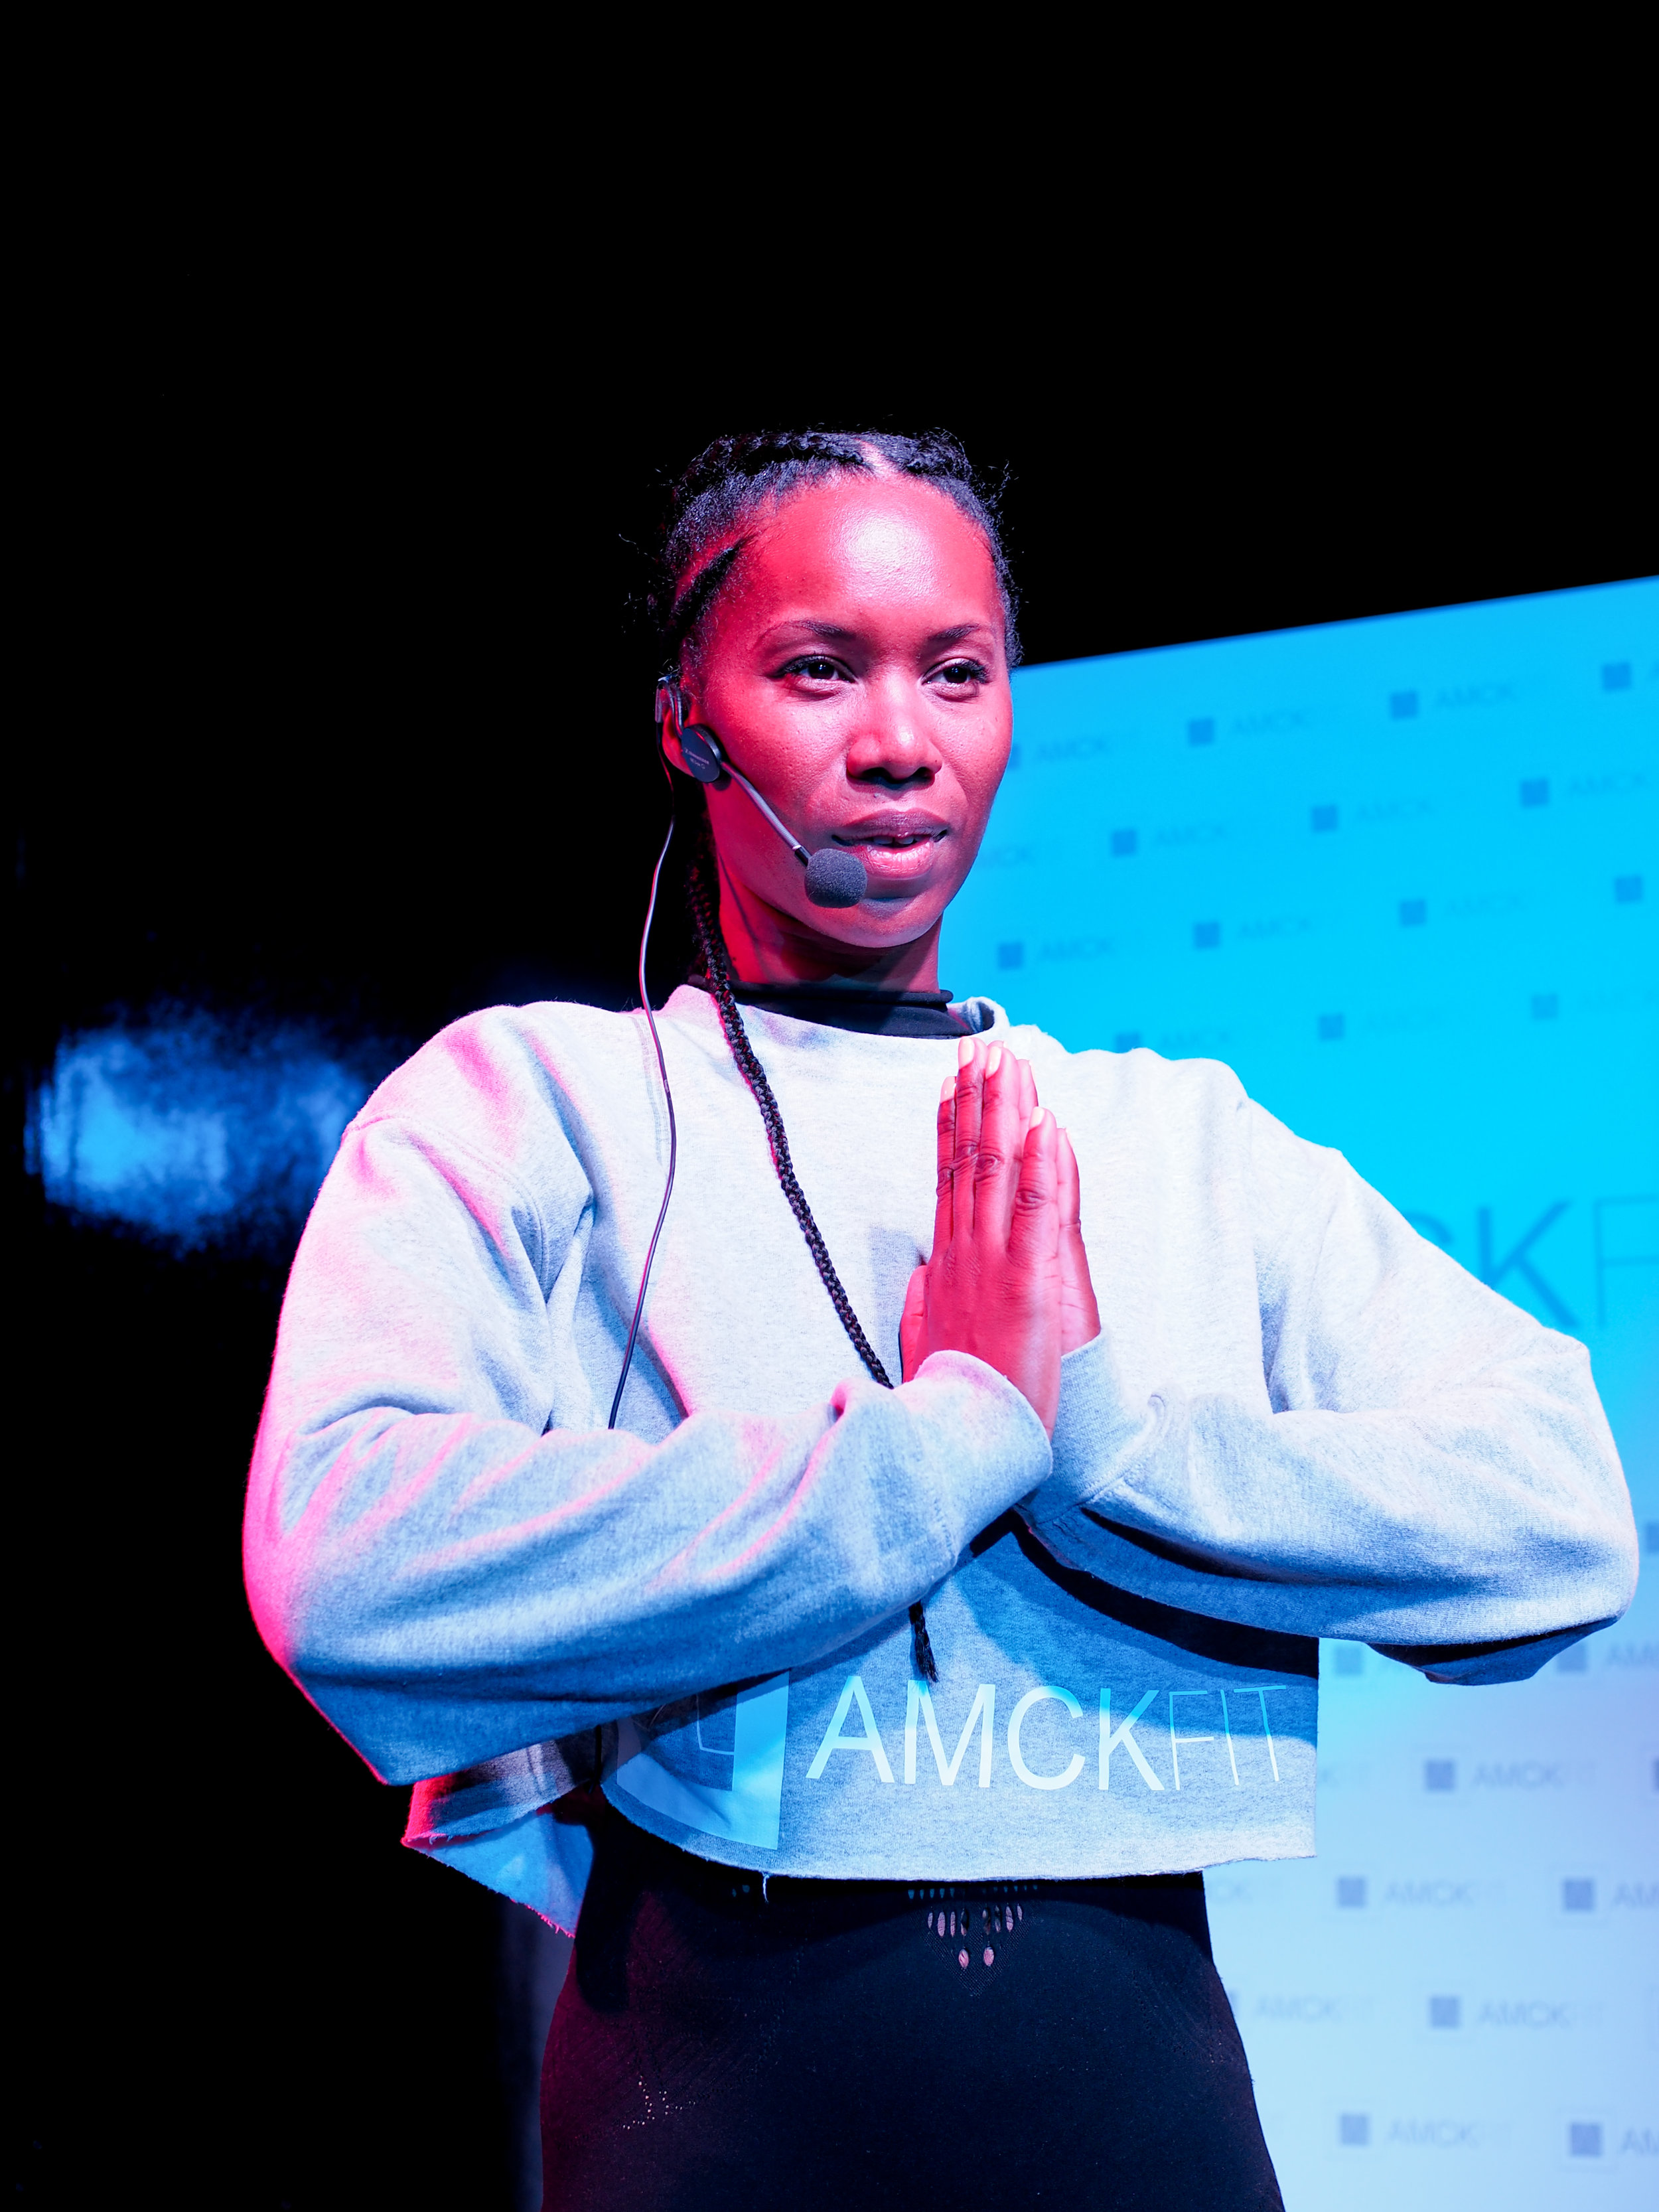 Aicha McKenzie during the launch rehearsals